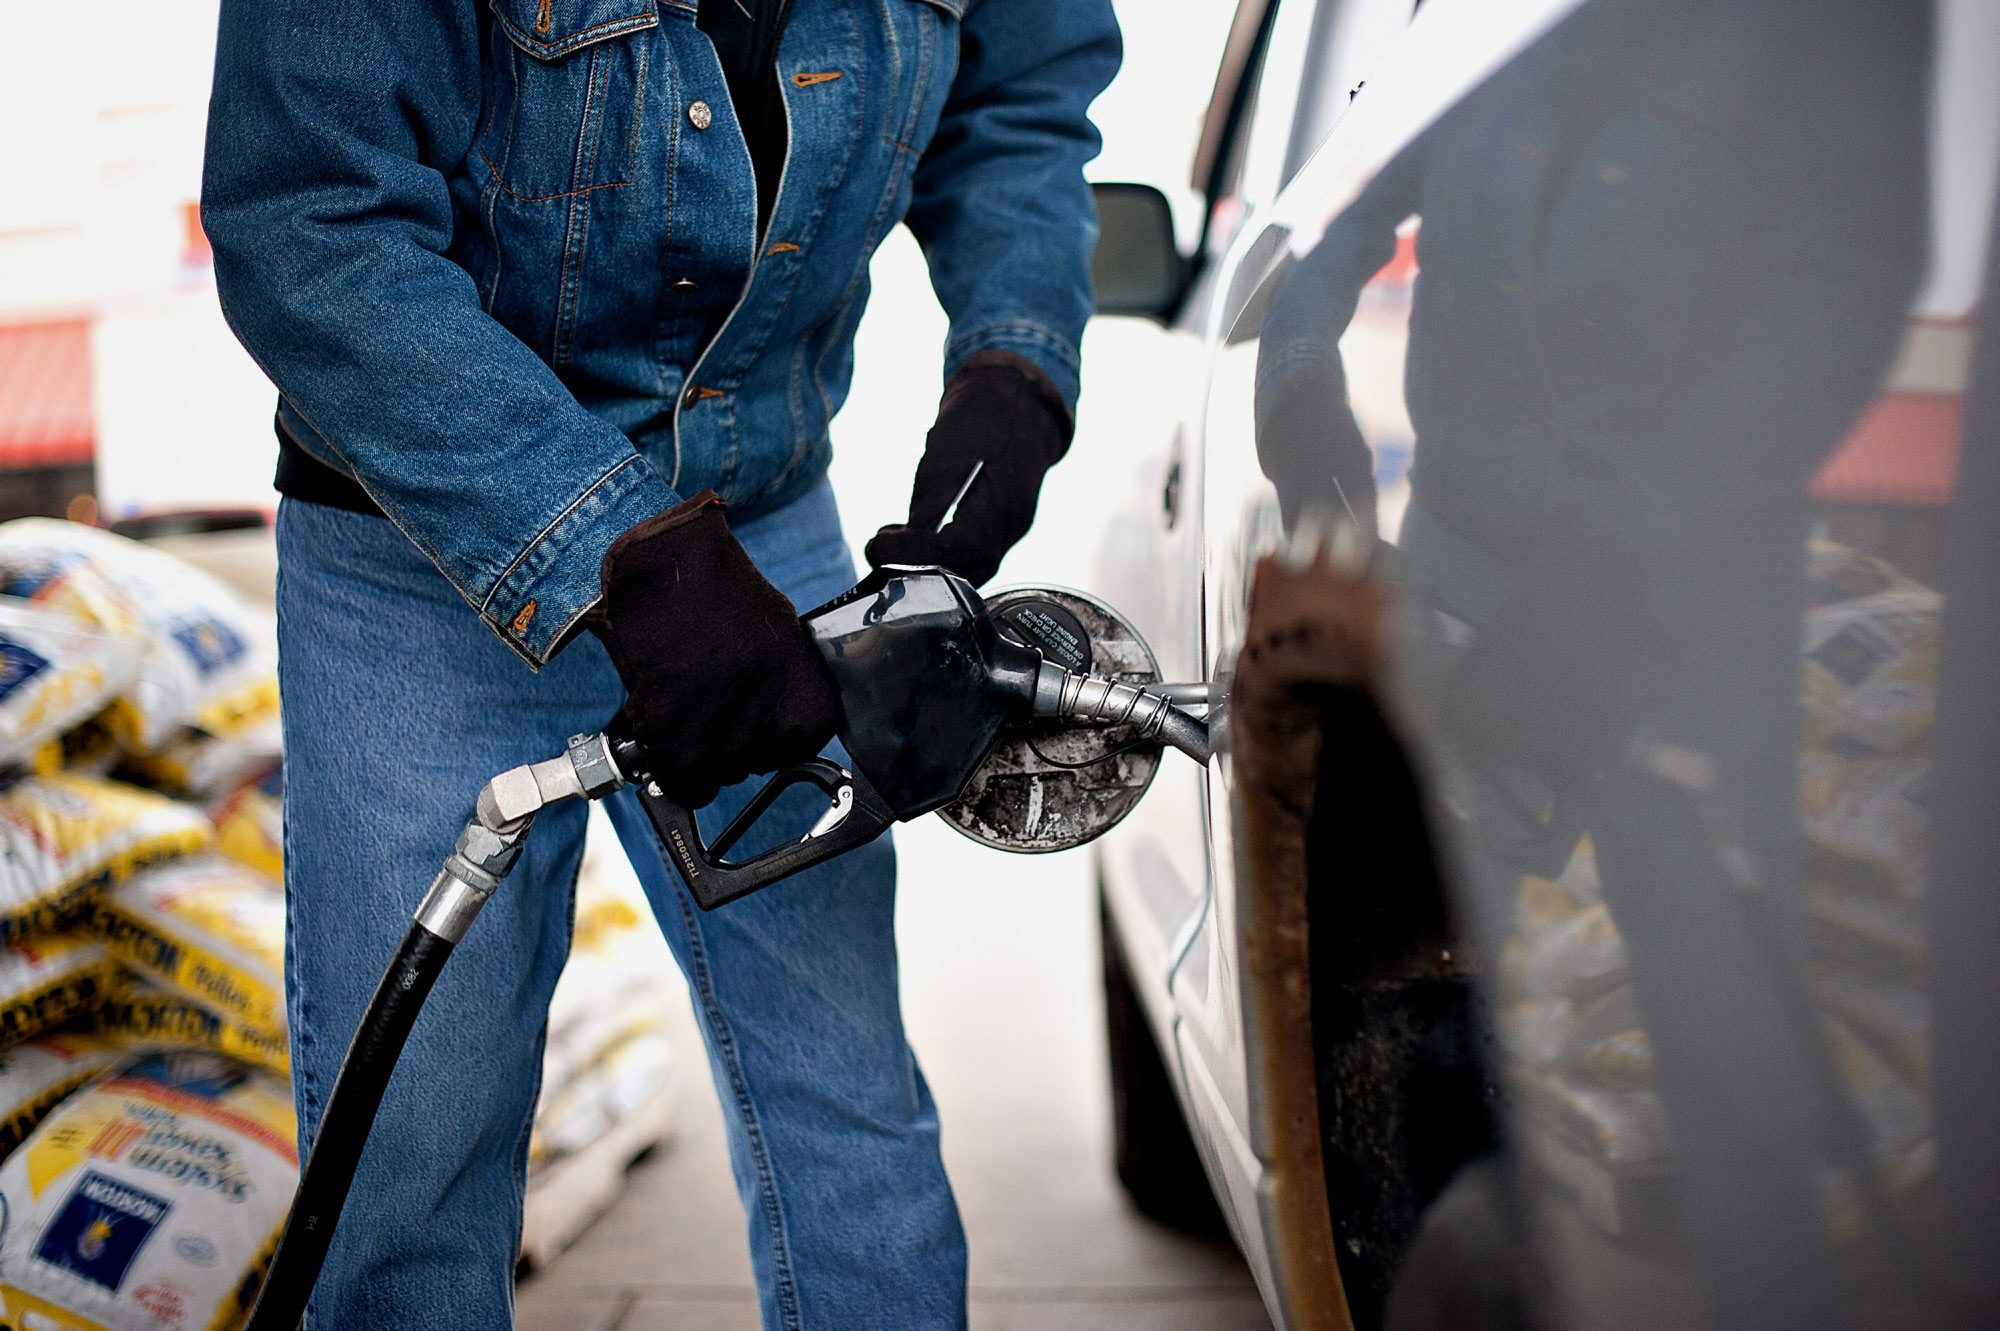 Various factors impact how long it takes to fill your tank at the gas station, but wind chill is not one of them.